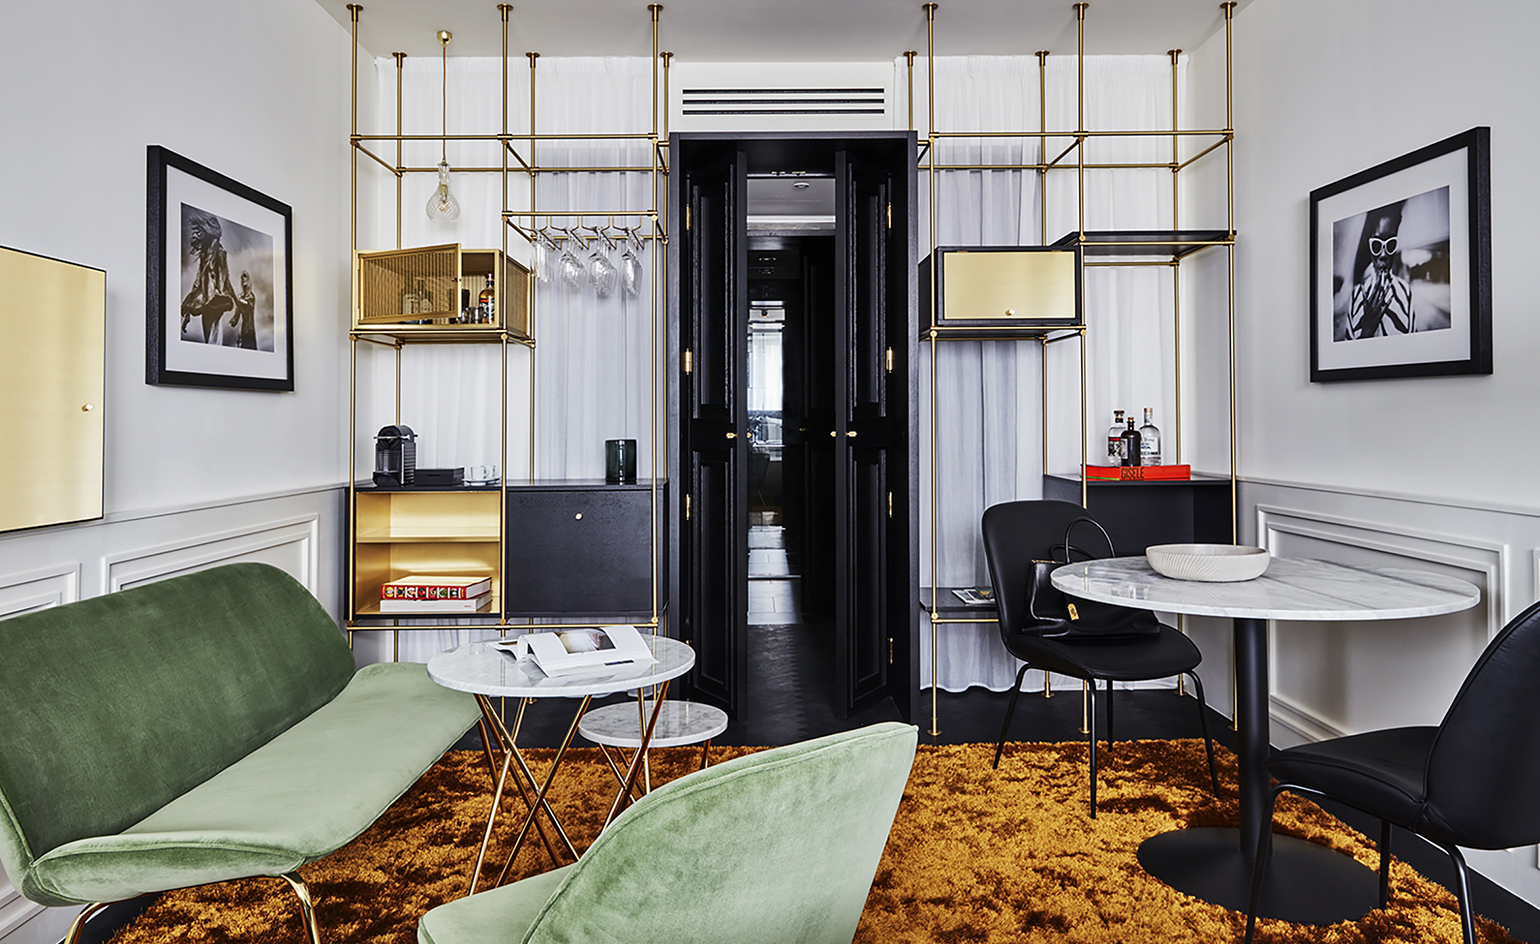 Roomers hotel review  Munich Germany  Wallpaper